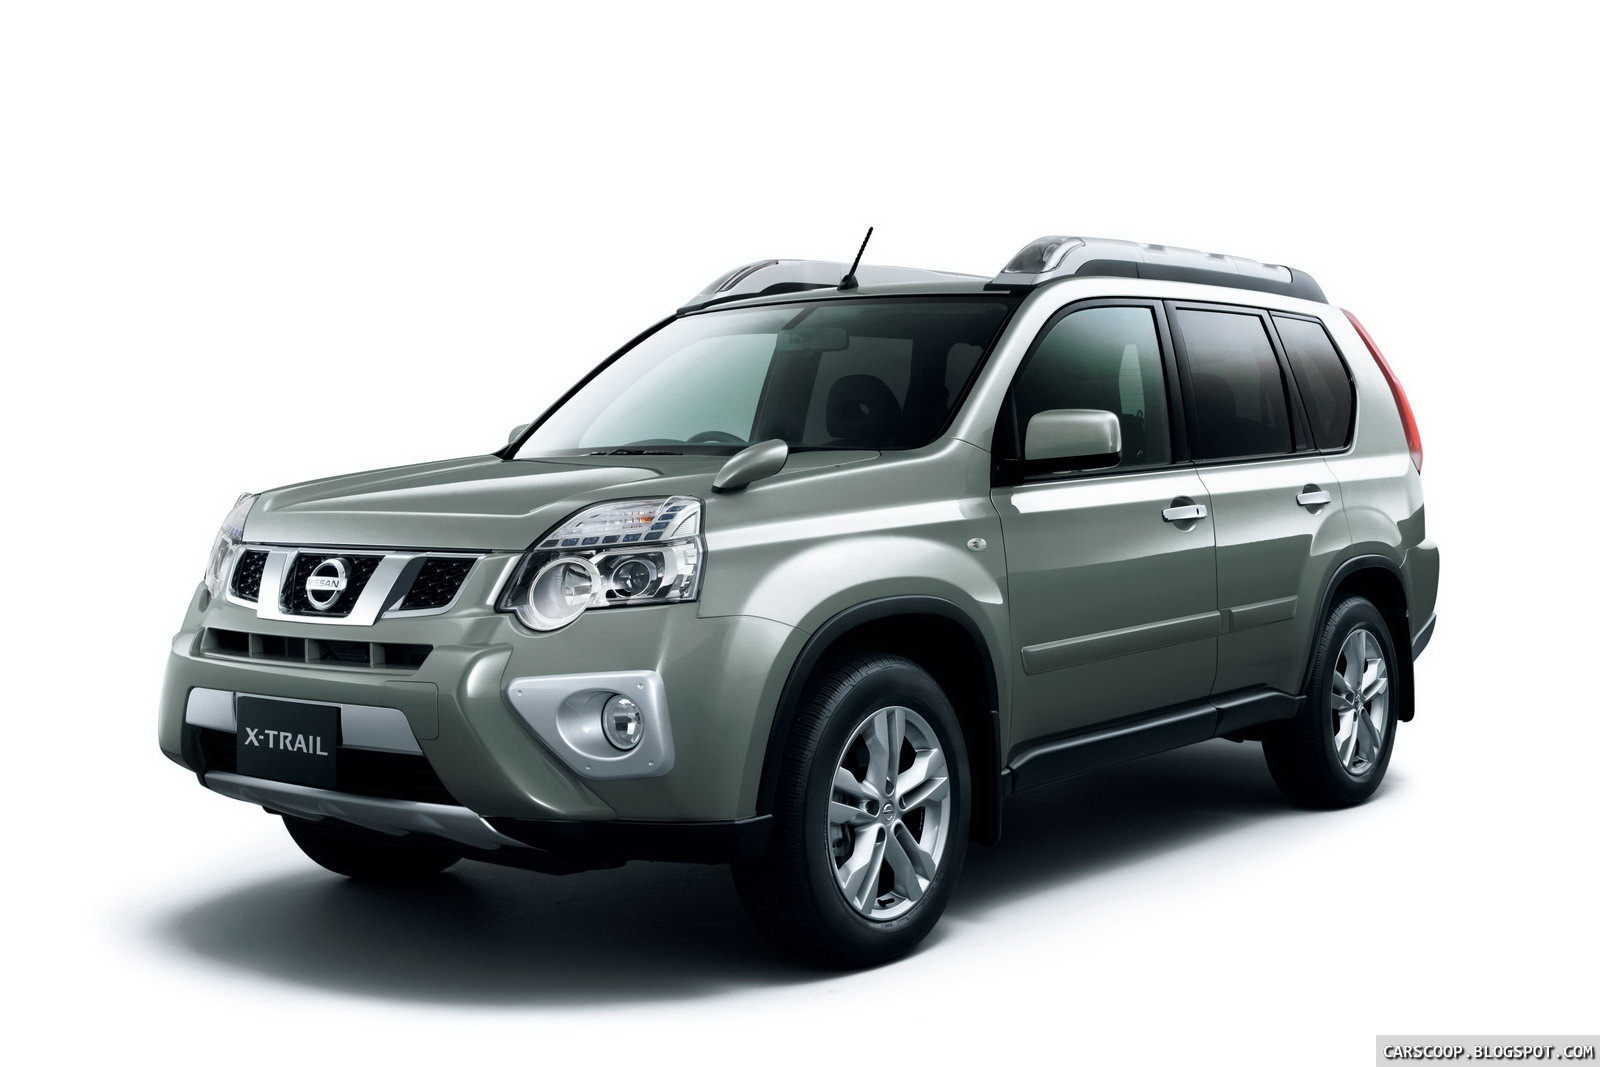 2011 nissan x trail suv facelift breaks cover in japan carscoops. Black Bedroom Furniture Sets. Home Design Ideas